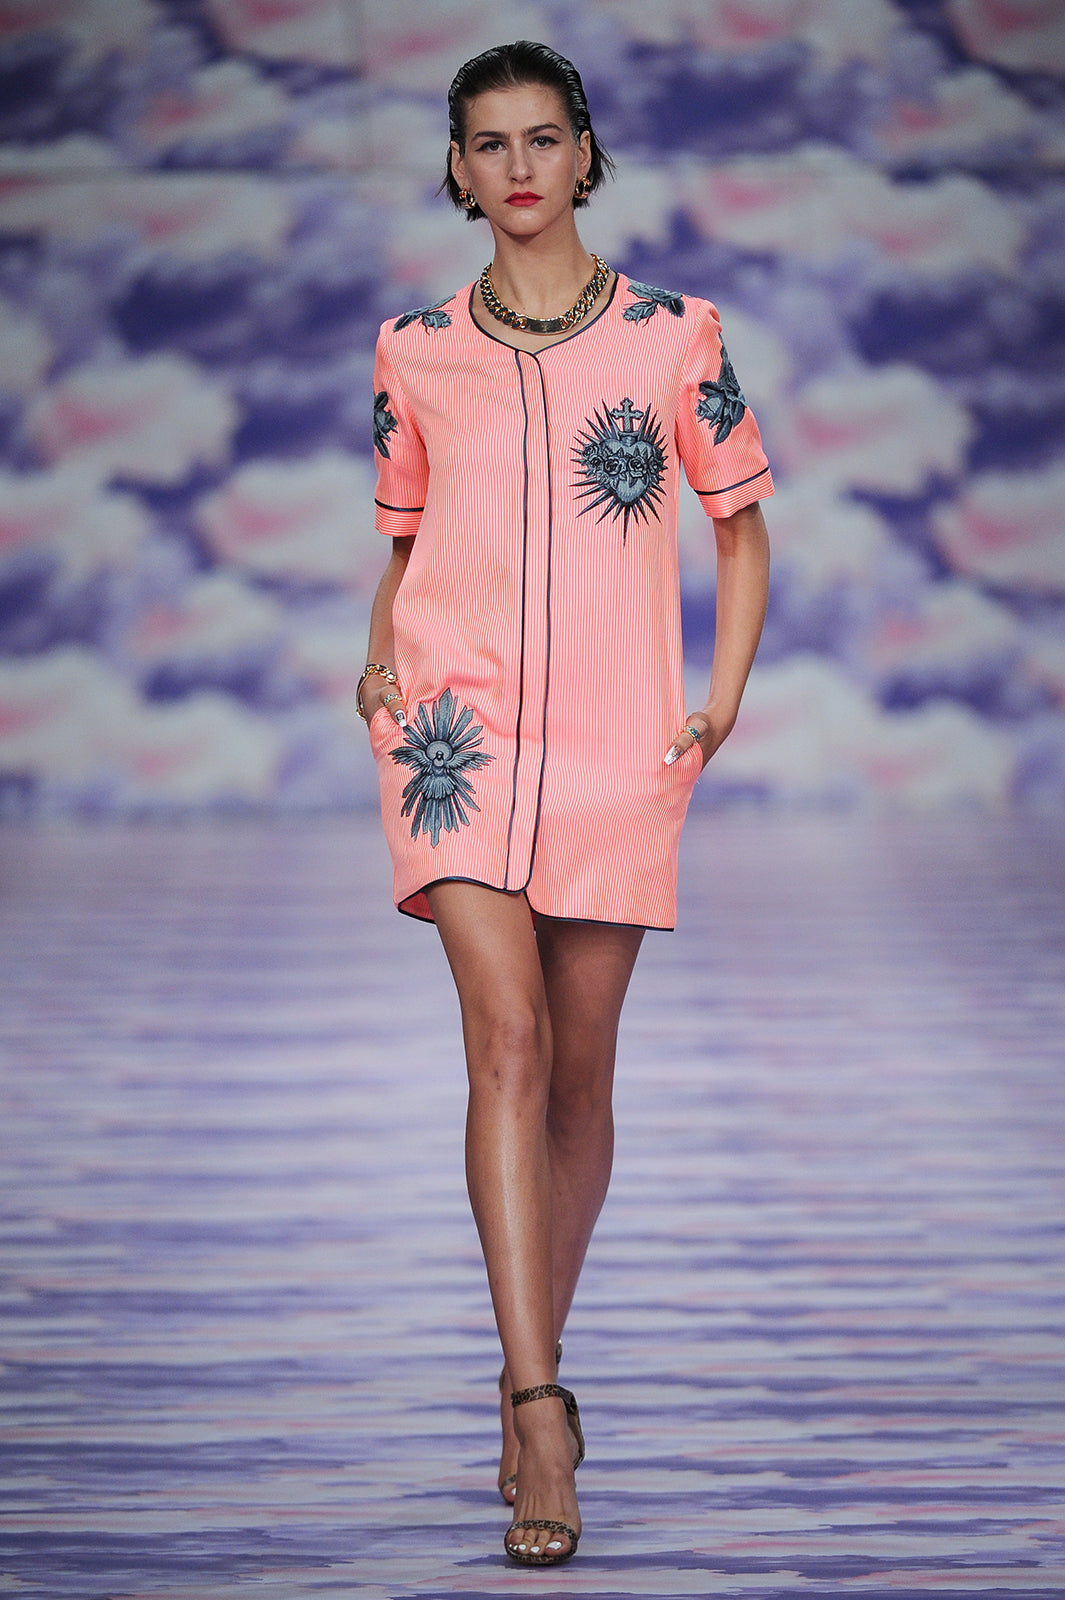 SS14 Homegirls - Catwalk – House of Holland